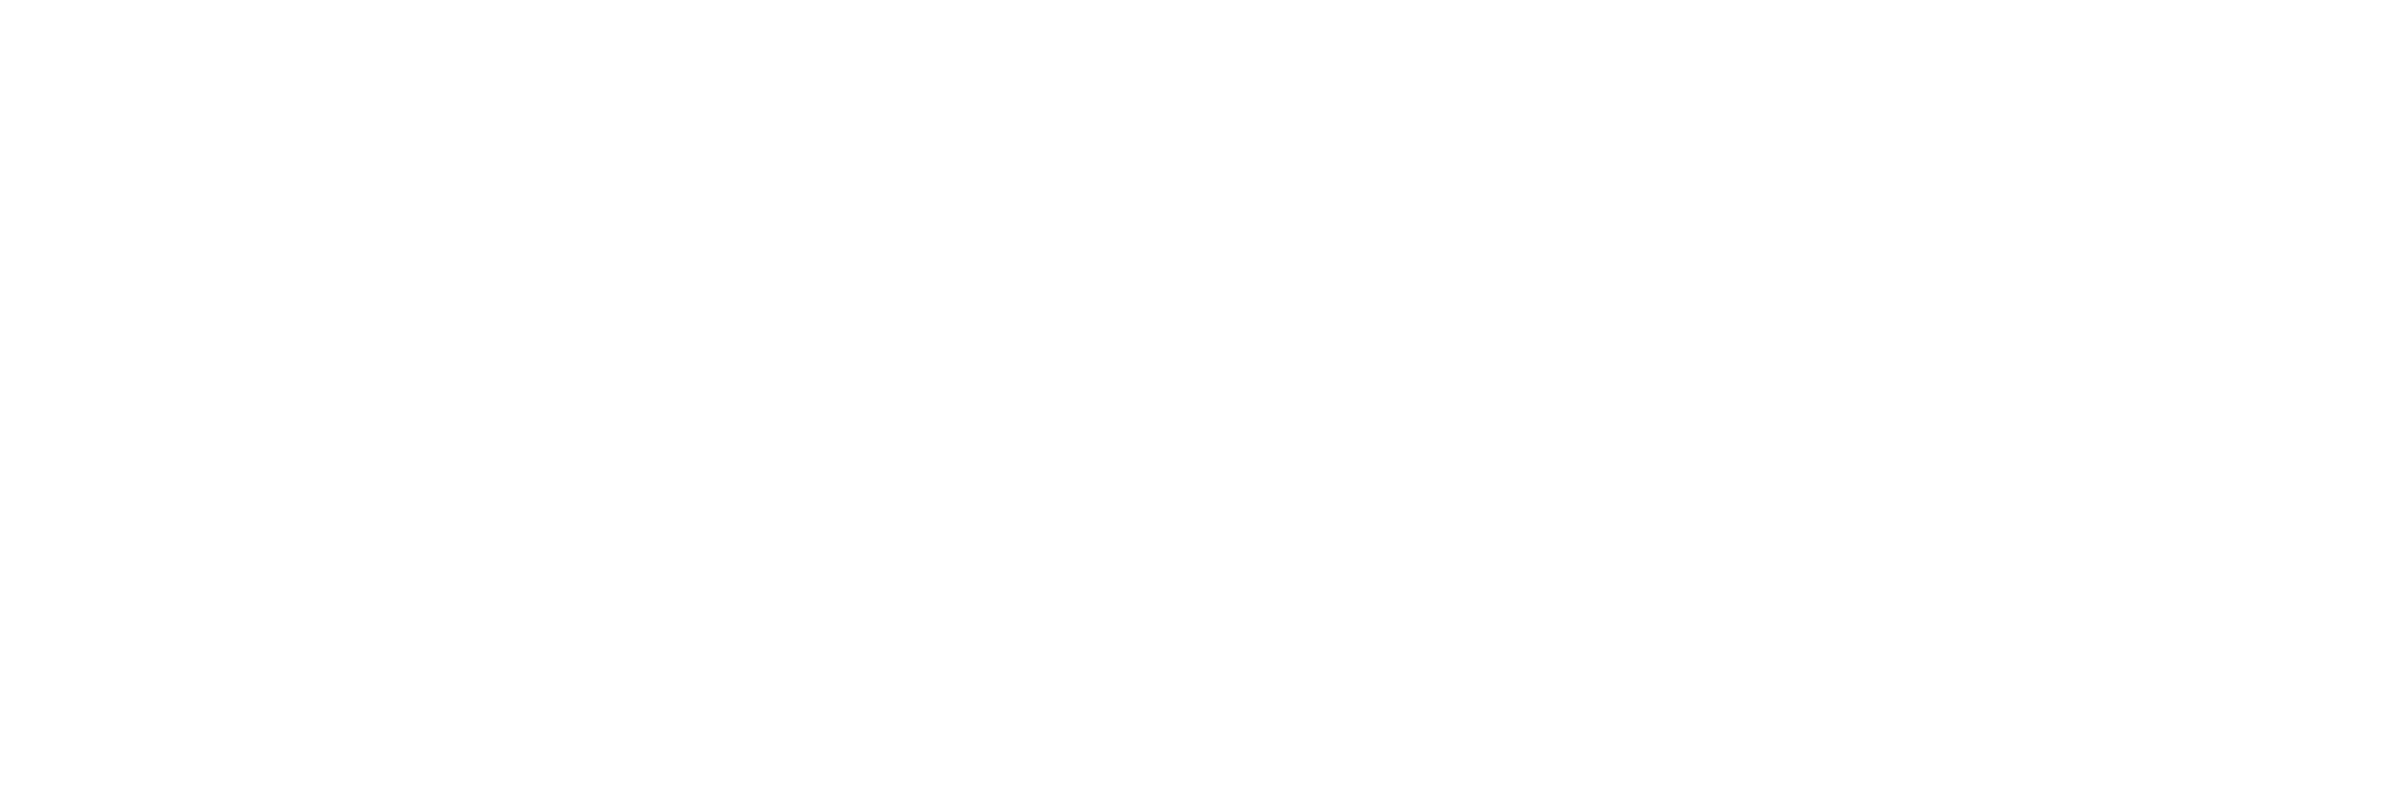 Merry Makers Holiday | Your Gift Guide to the holidays.